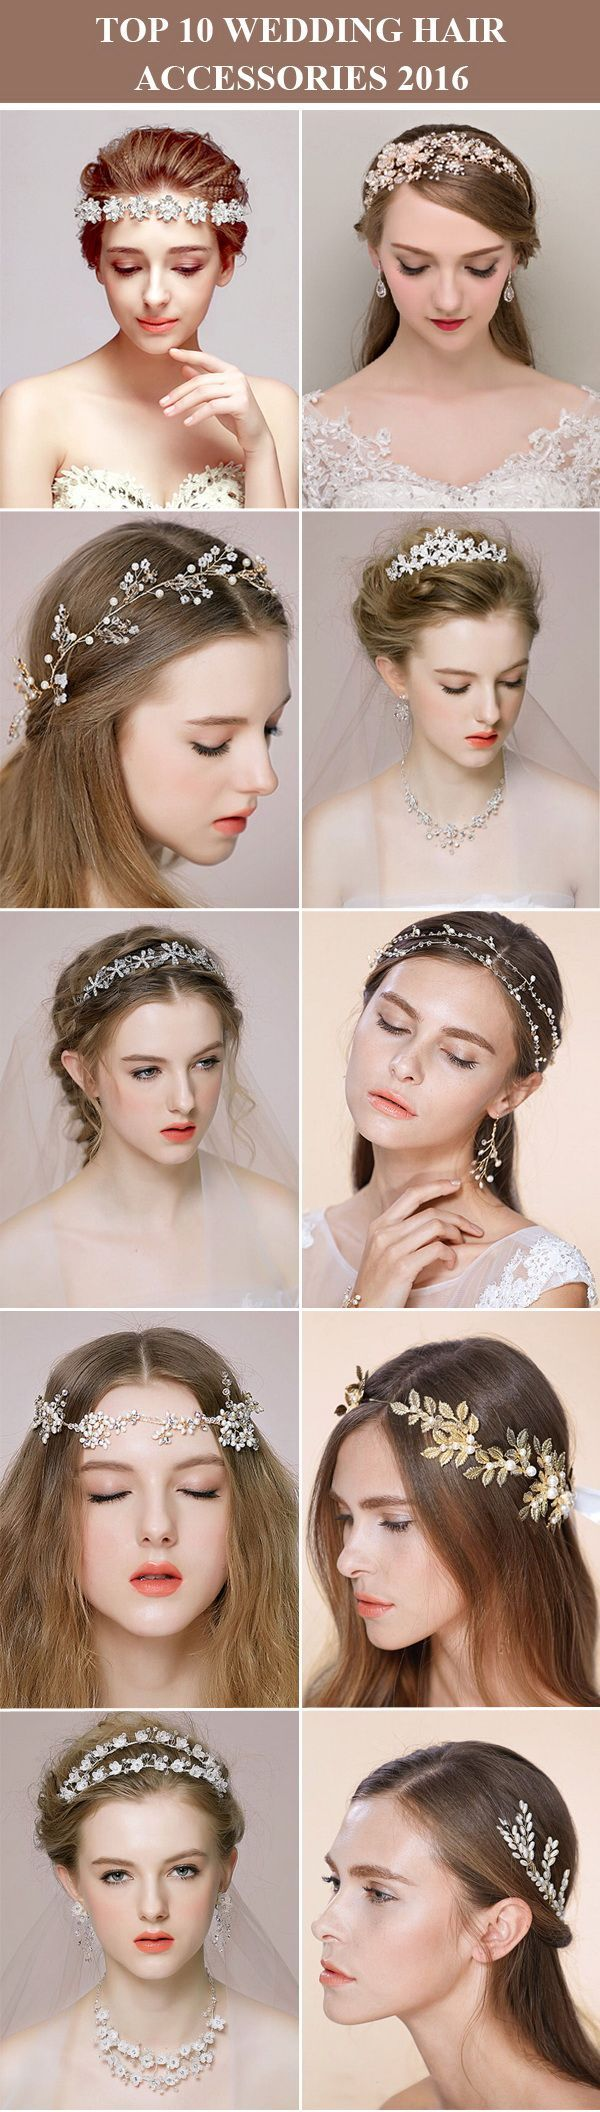 top 10 wedding hair accessories, wedding hairpieces and wedding headbands for 2016 from /tullechantilly/